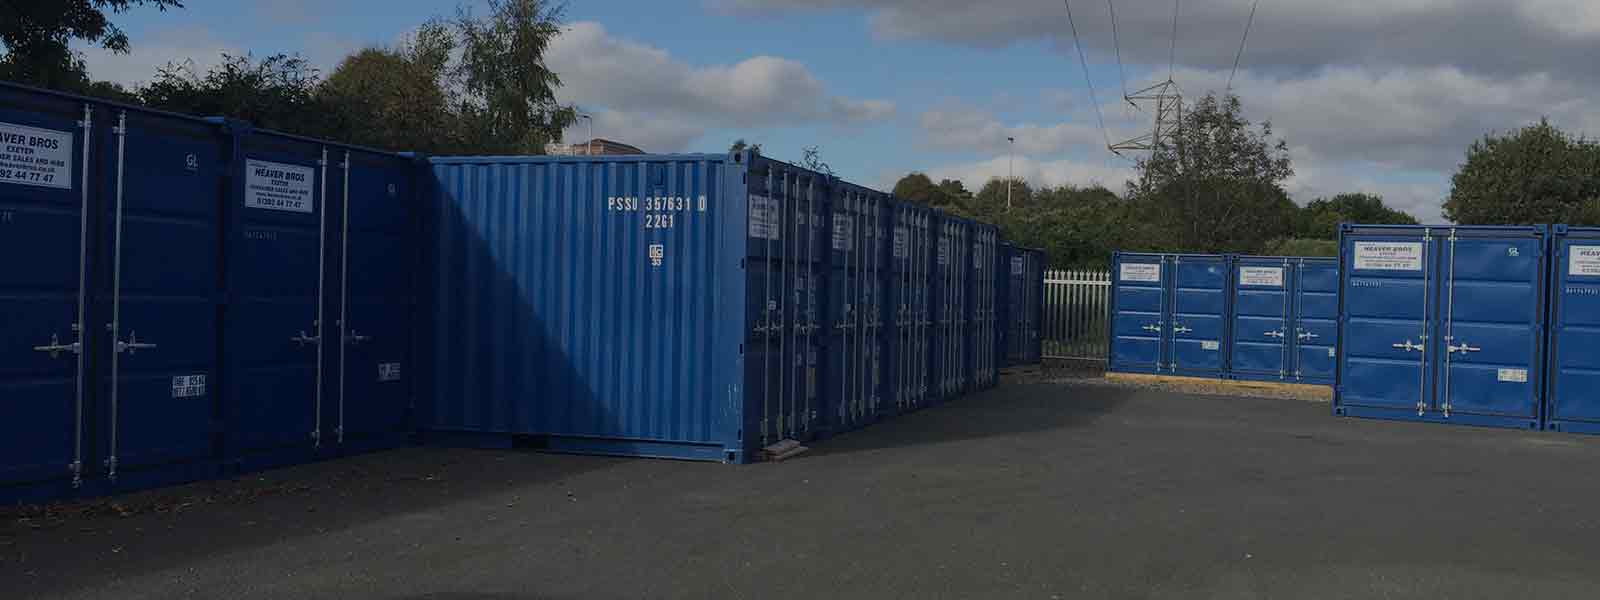 Self Storage Plymouth Flexible Secure Self Storage In